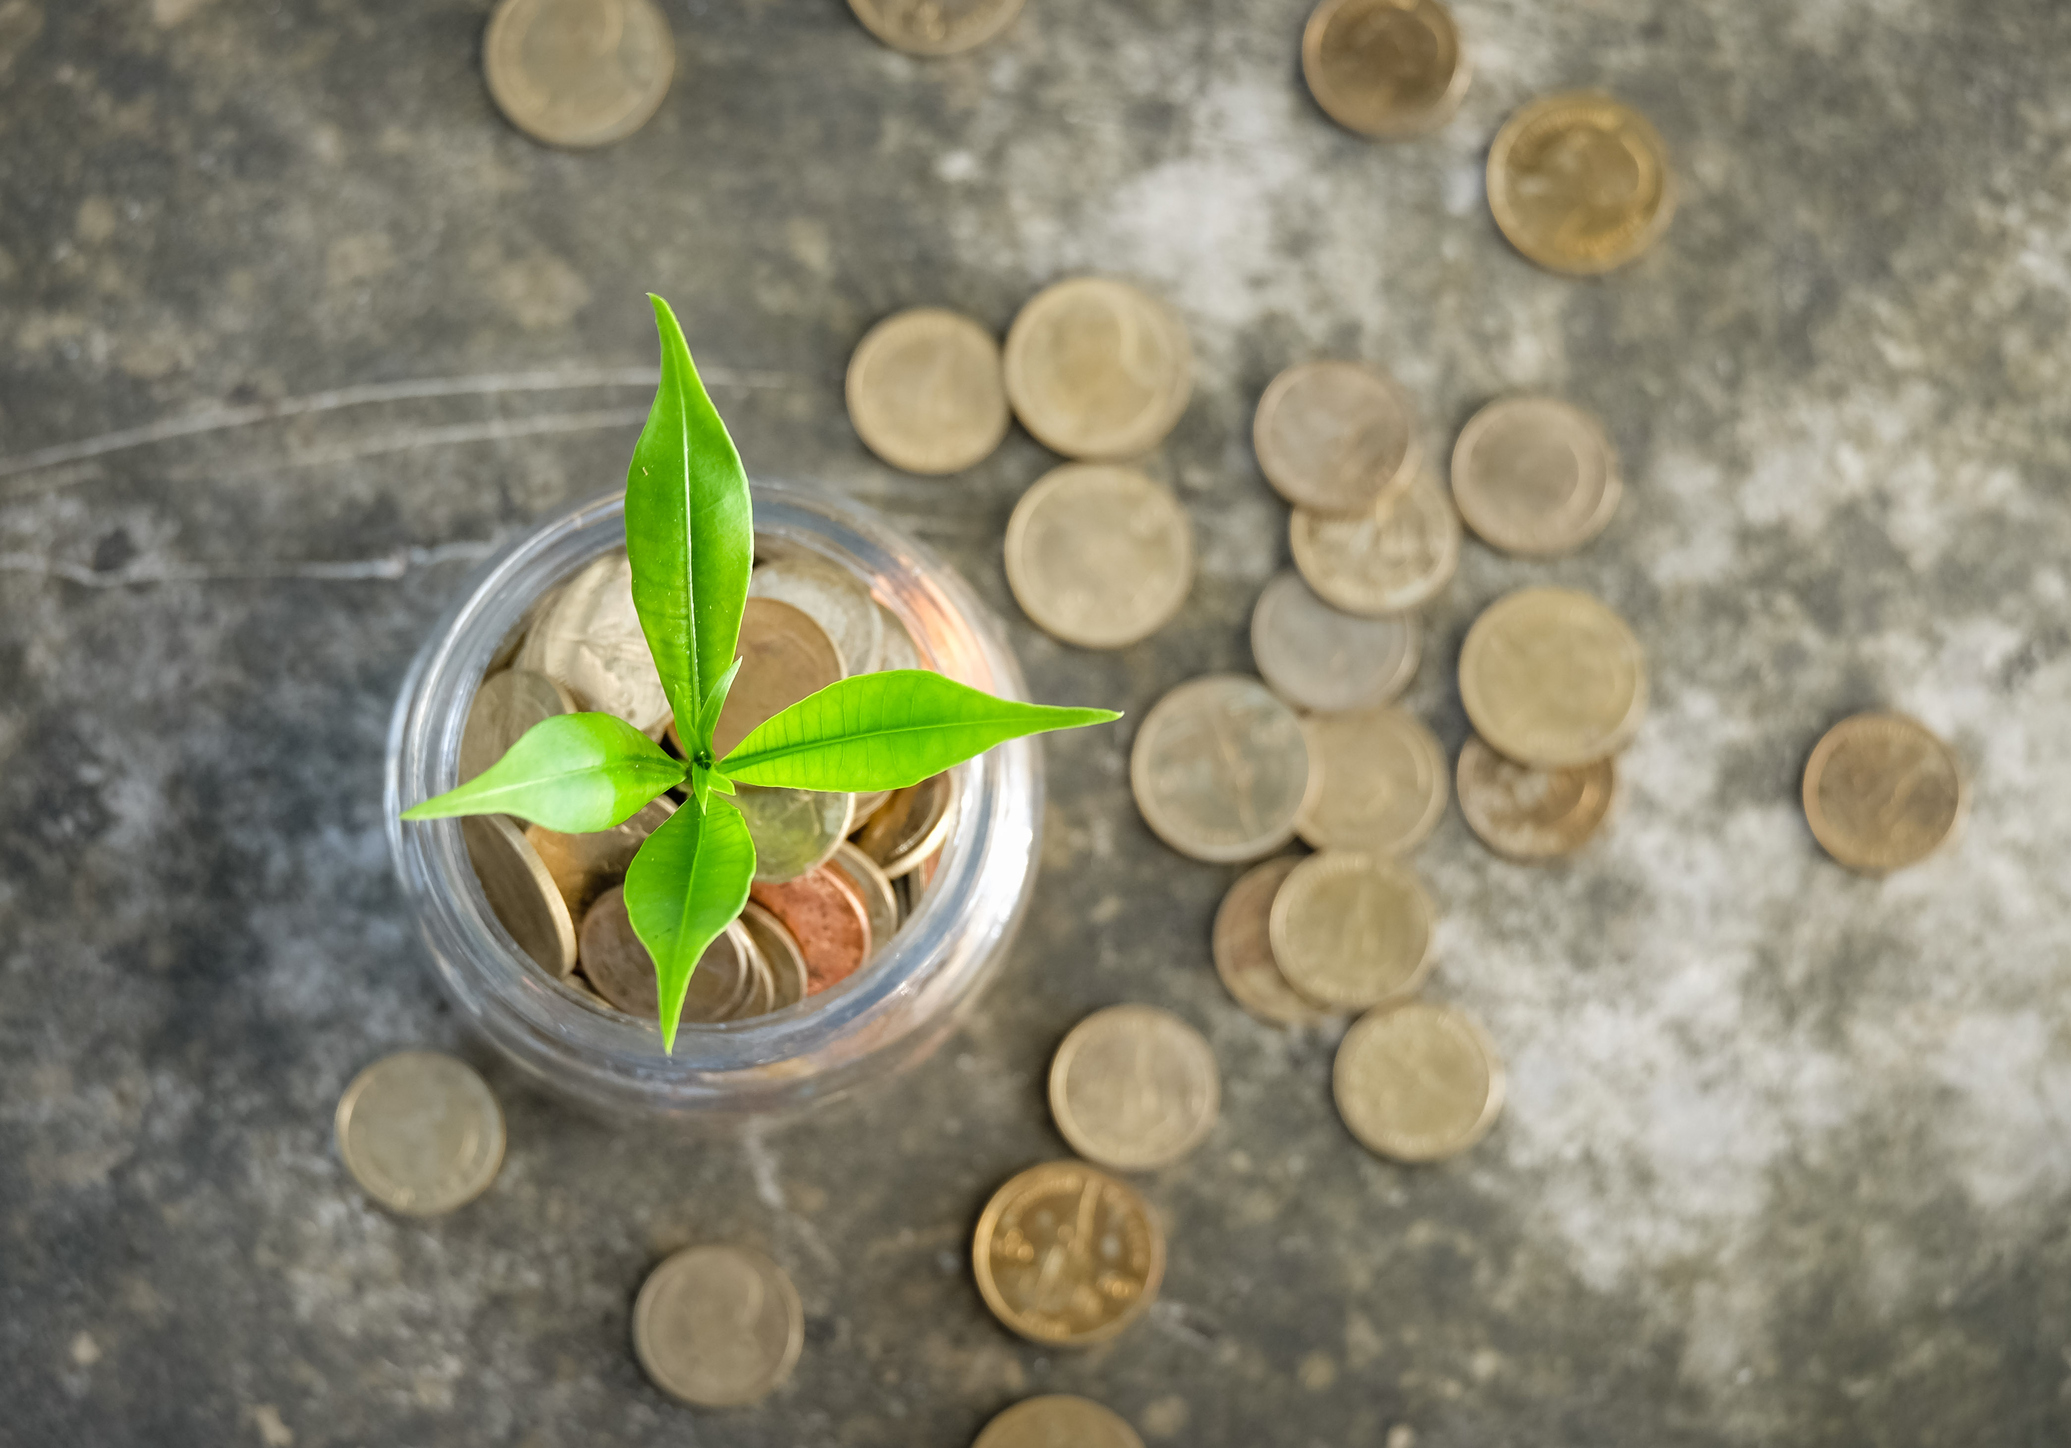 Glass Coin Cart, Plant growing on Coins glass jar and concept money saving coins.